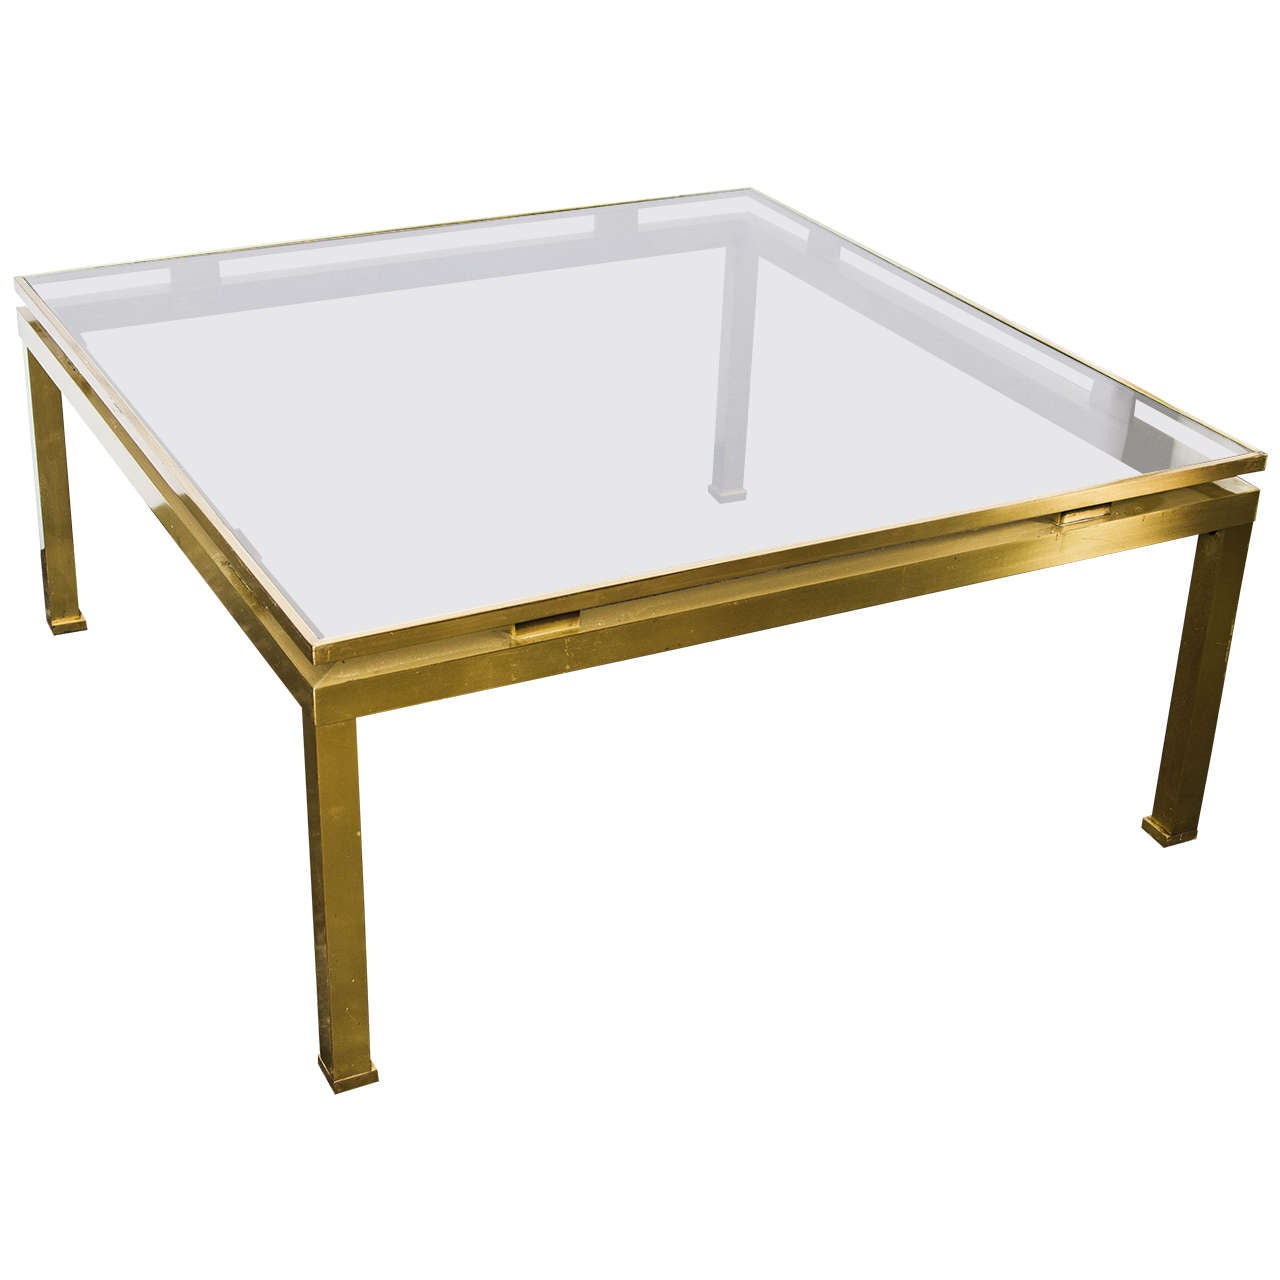 Brass And Glass Coffee Table By Guy Lefevre At 1stdibs